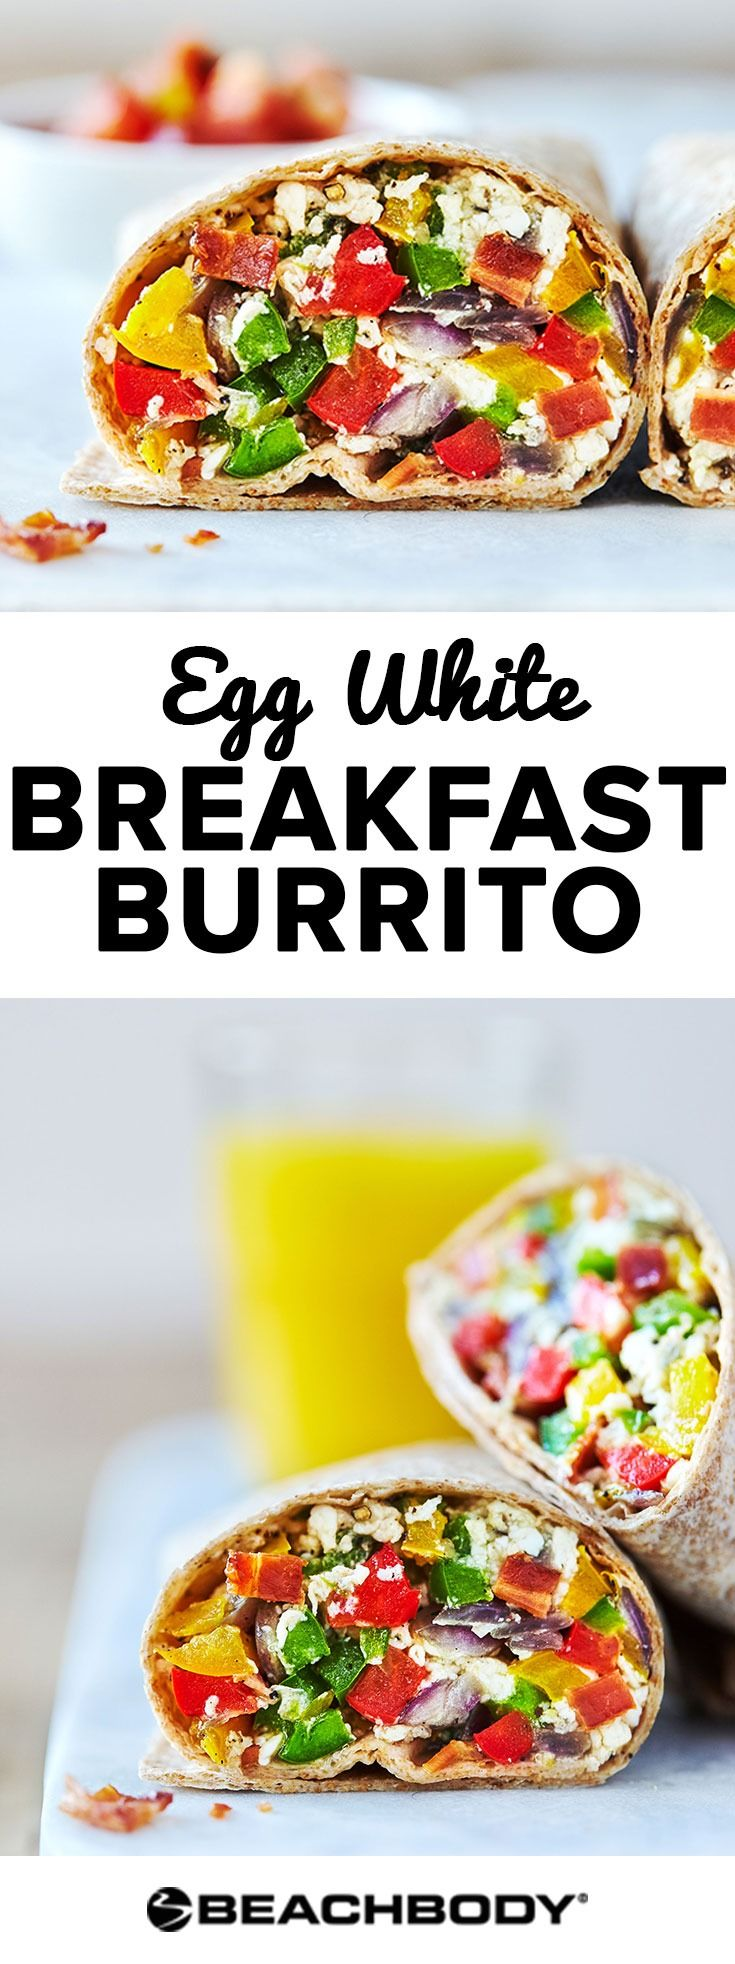 Try this delicious egg white breakfast burrito for an easy and healthy breakfast option. healthy breakfast recipes // healthy egg recipes // egg white recipe // best breakfast ideas // easy breakfast ideas // Beachbody // Beachbody Blog